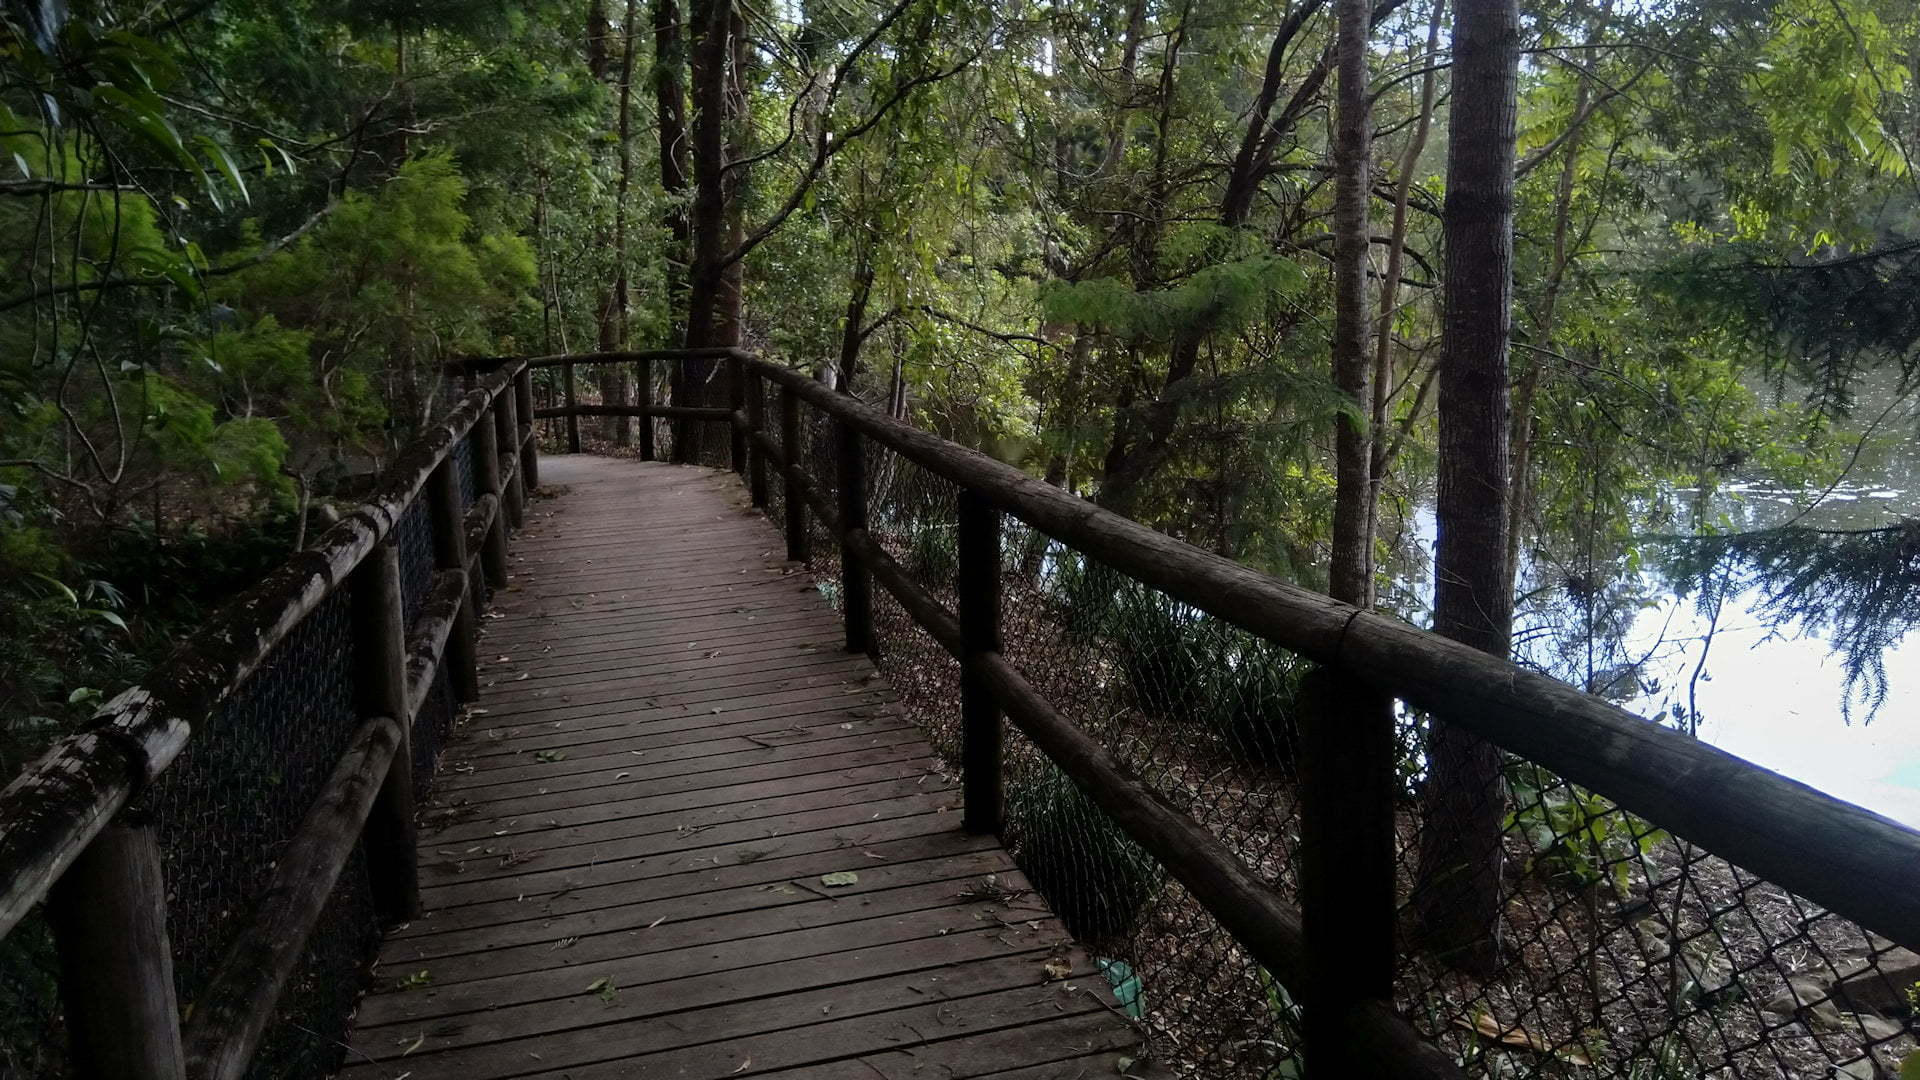 Wooden walkway through forest next to a waterhole, taken at Kumbartcho Sanctuary